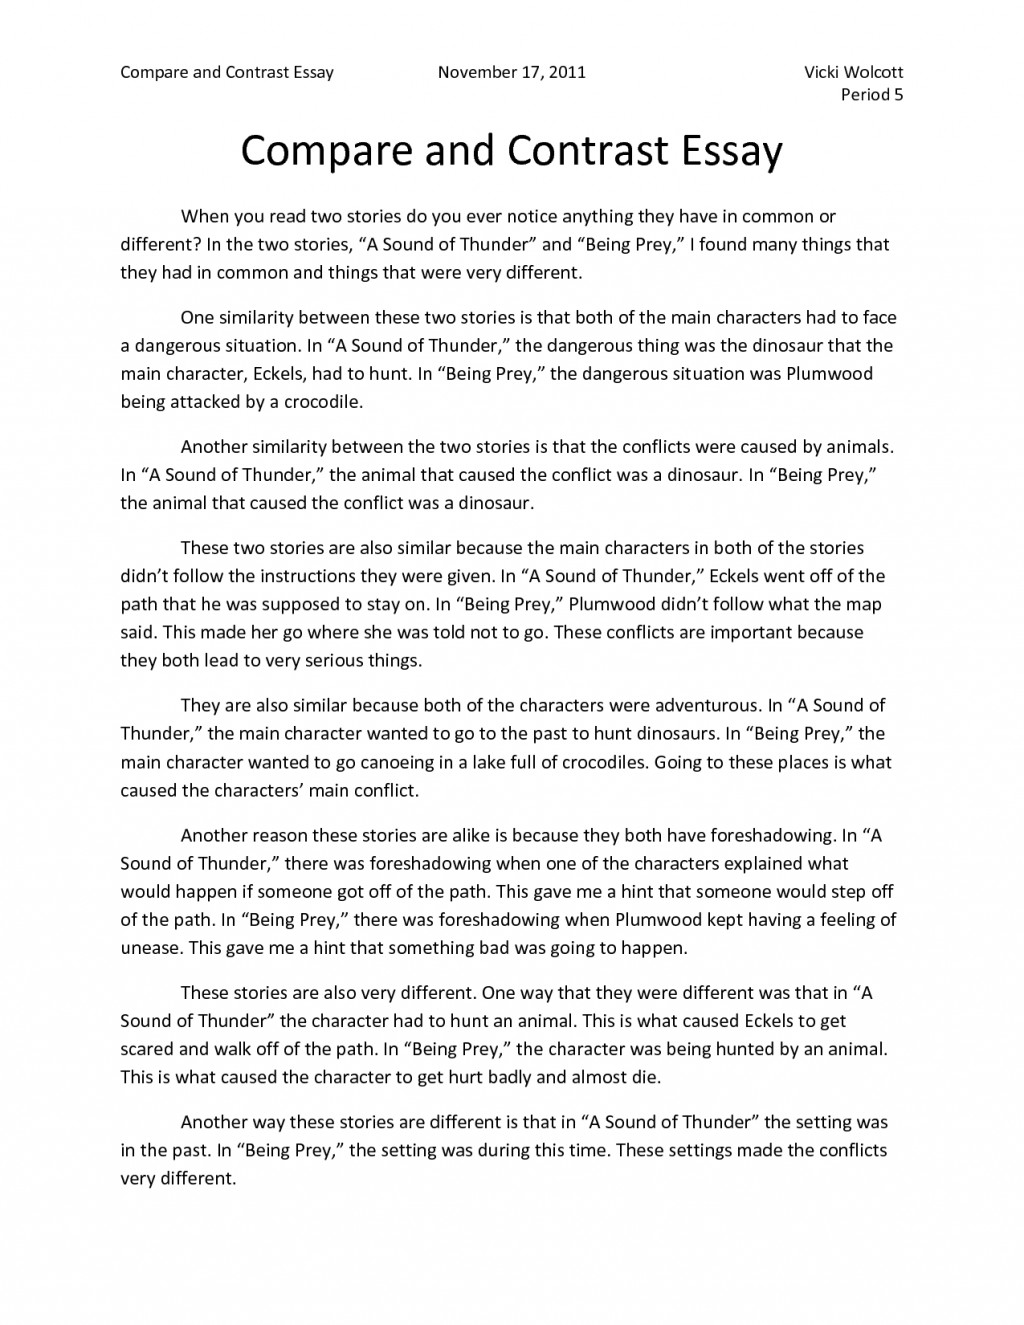 004 Essay Example Compare And Contrast Essays Perfect Introduction How To Write College Awful Free Examples For Topics Middle School Large